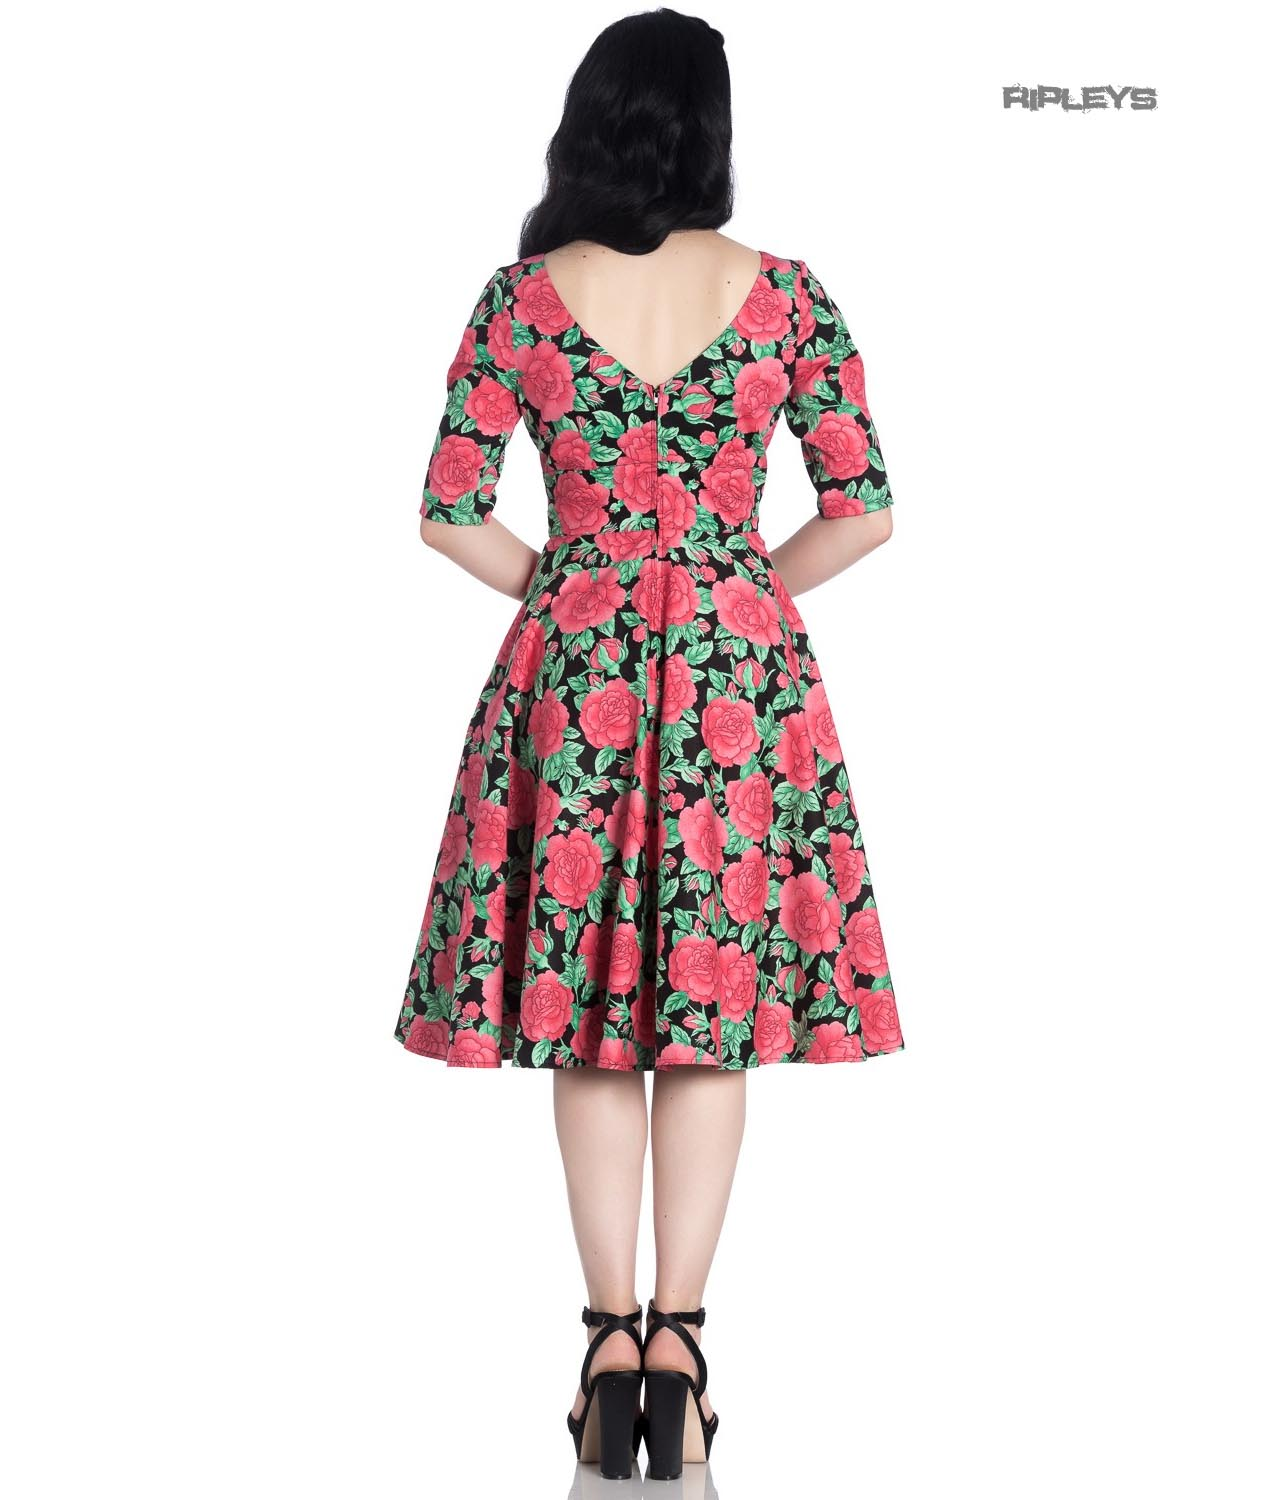 Hell-Bunny-40s-50s-Black-Pin-Up-Vintage-Dress-DARCY-Pink-Roses-All-Sizes thumbnail 16